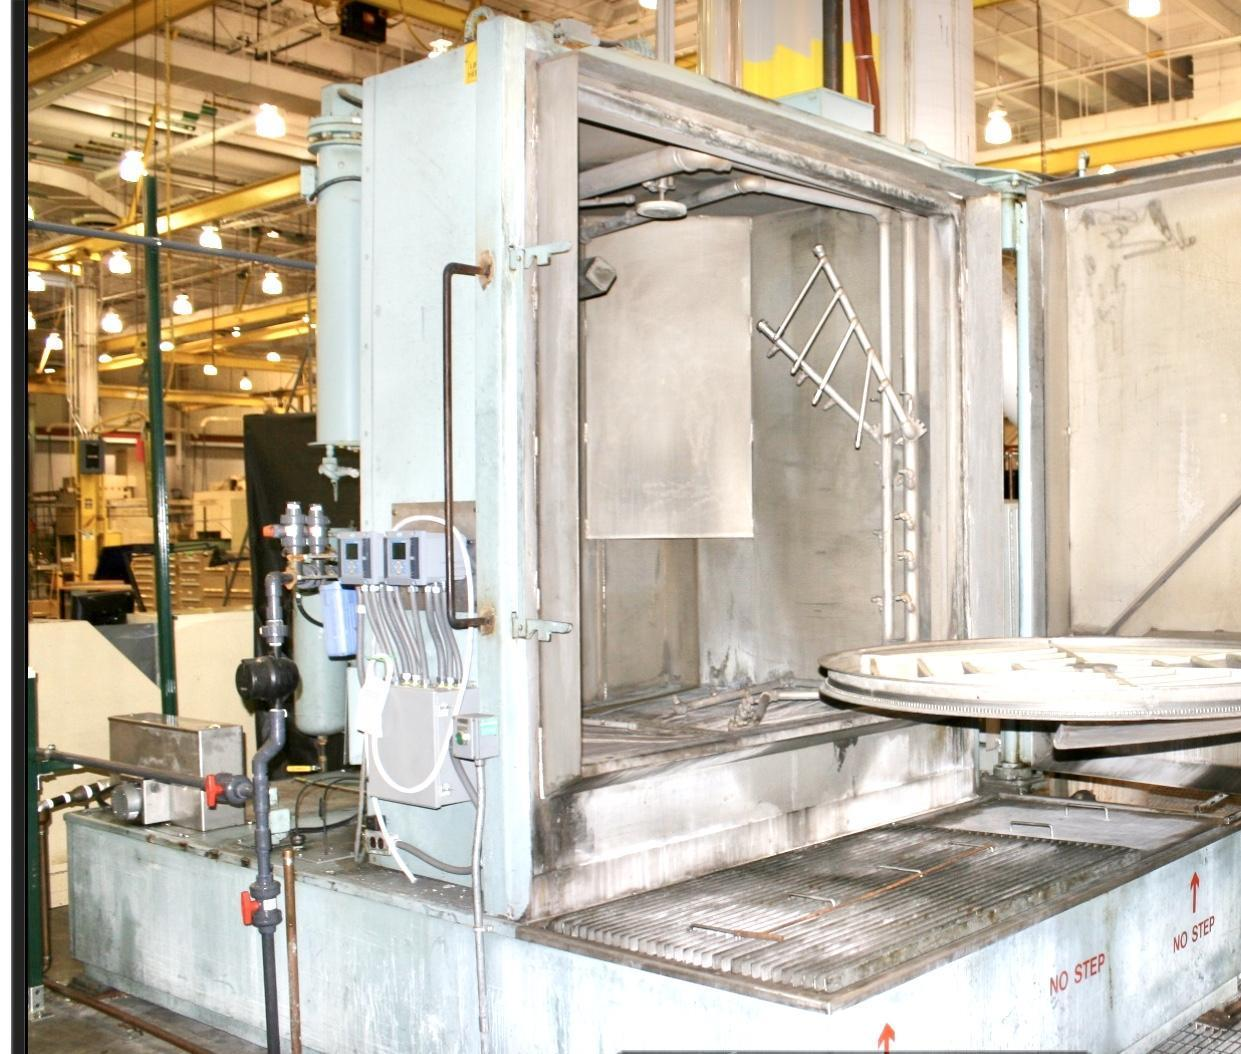 Proceco Washer front load